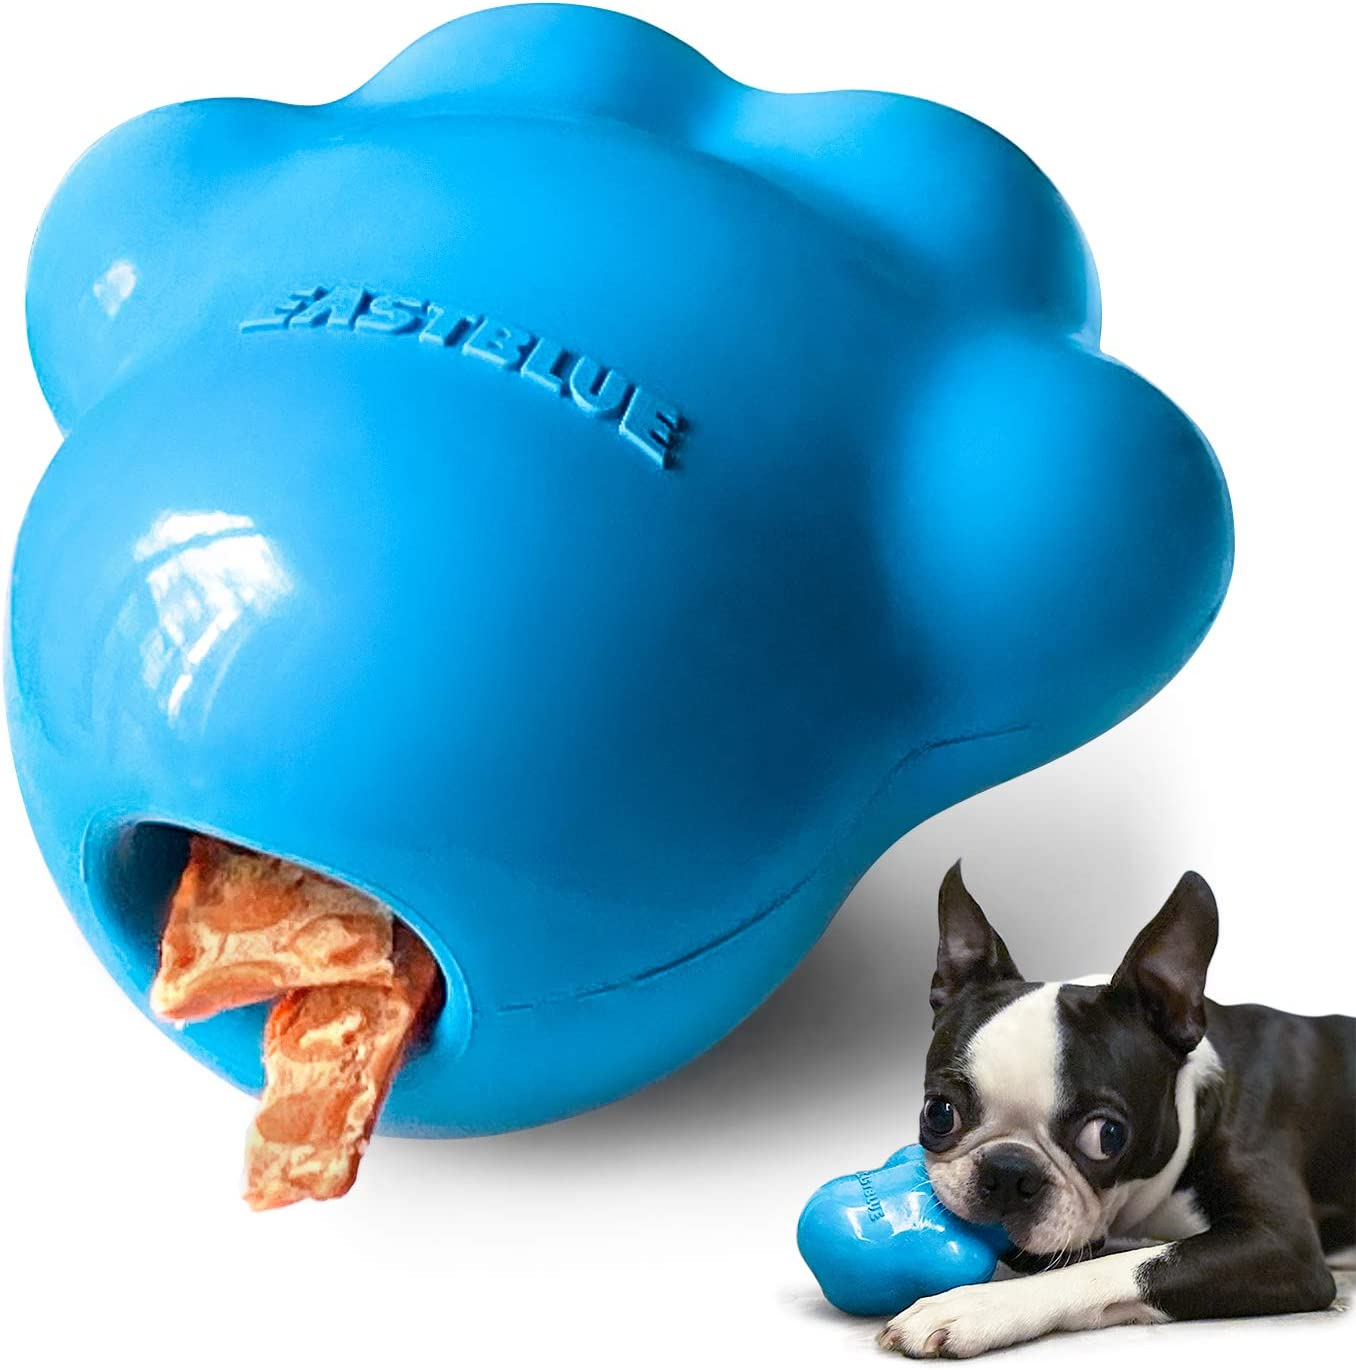 EASTBLUE Dog Toys for Aggressive Chewers: Durable Treat Cheap Popular shop is the lowest price challenge mail order shopping Dispensi